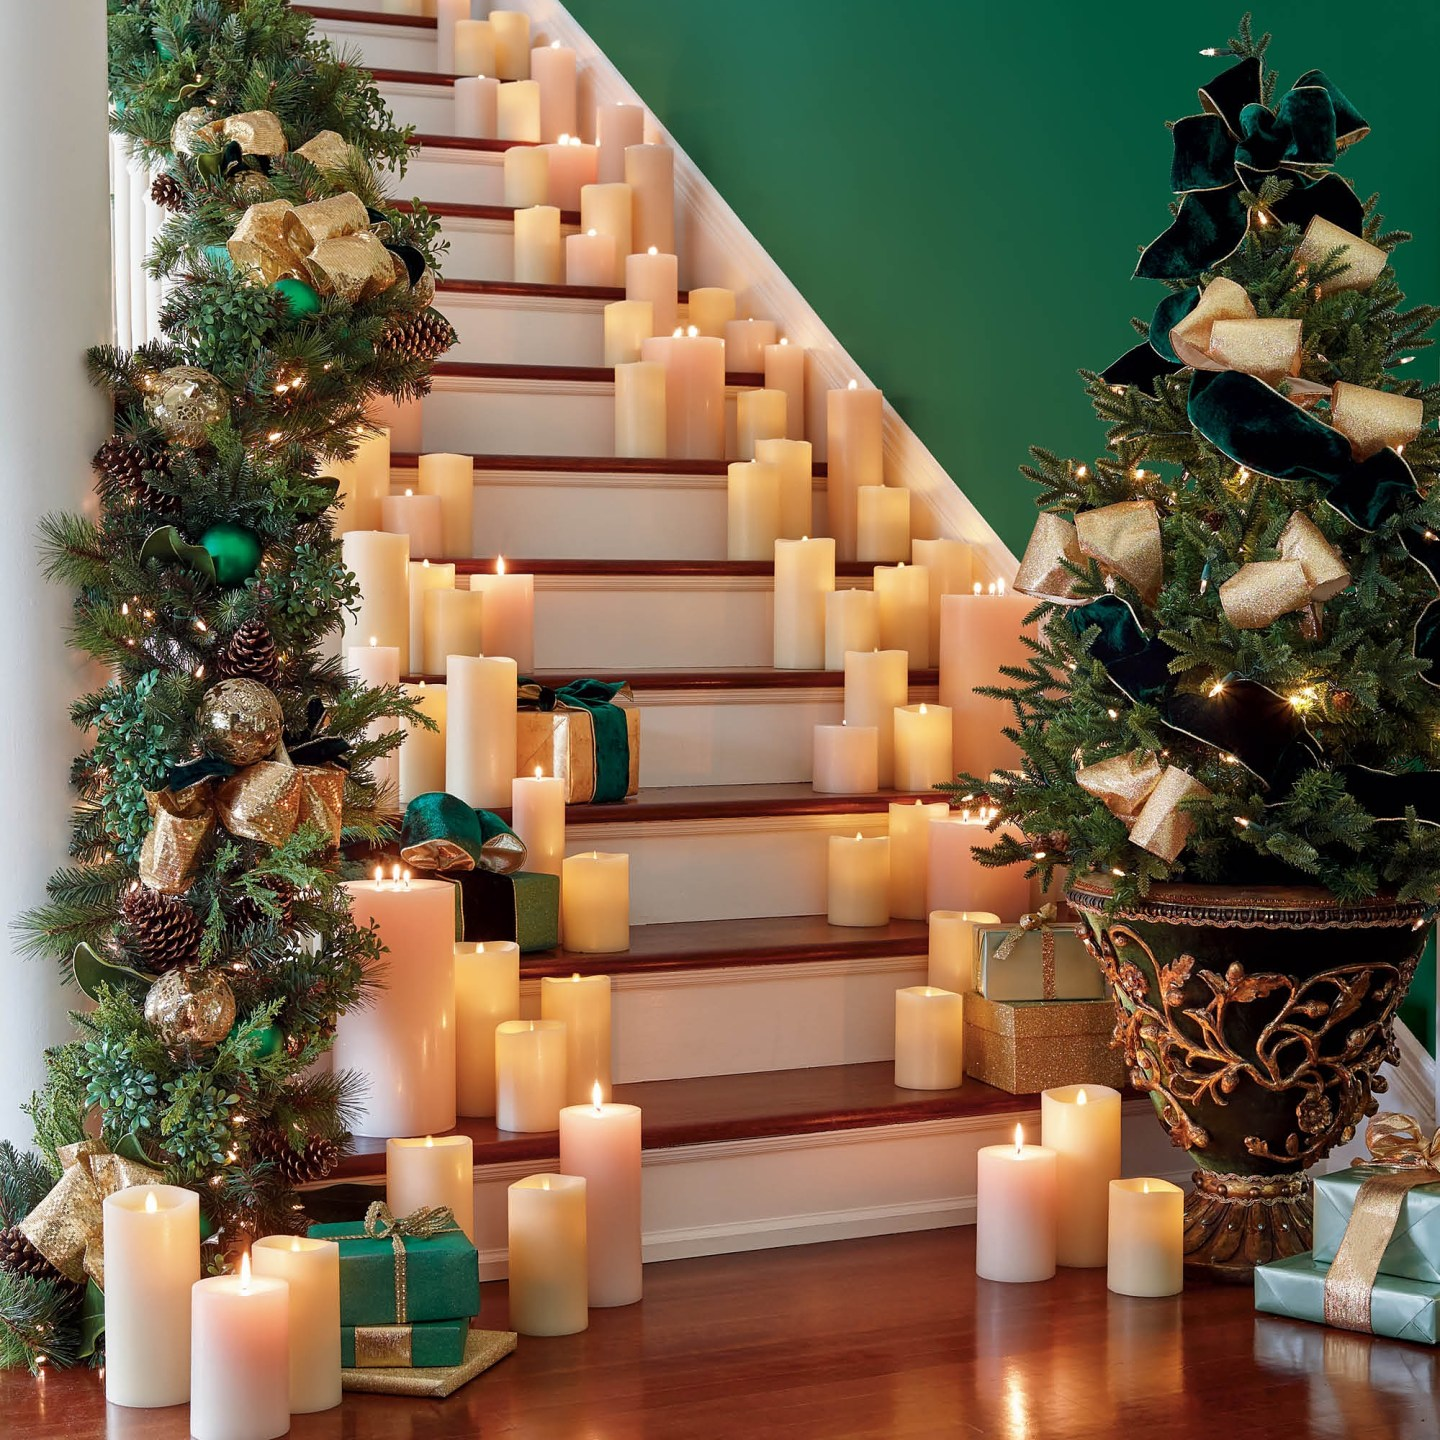 Cumberland-10 Green and Gold Holiday Decor We Love!